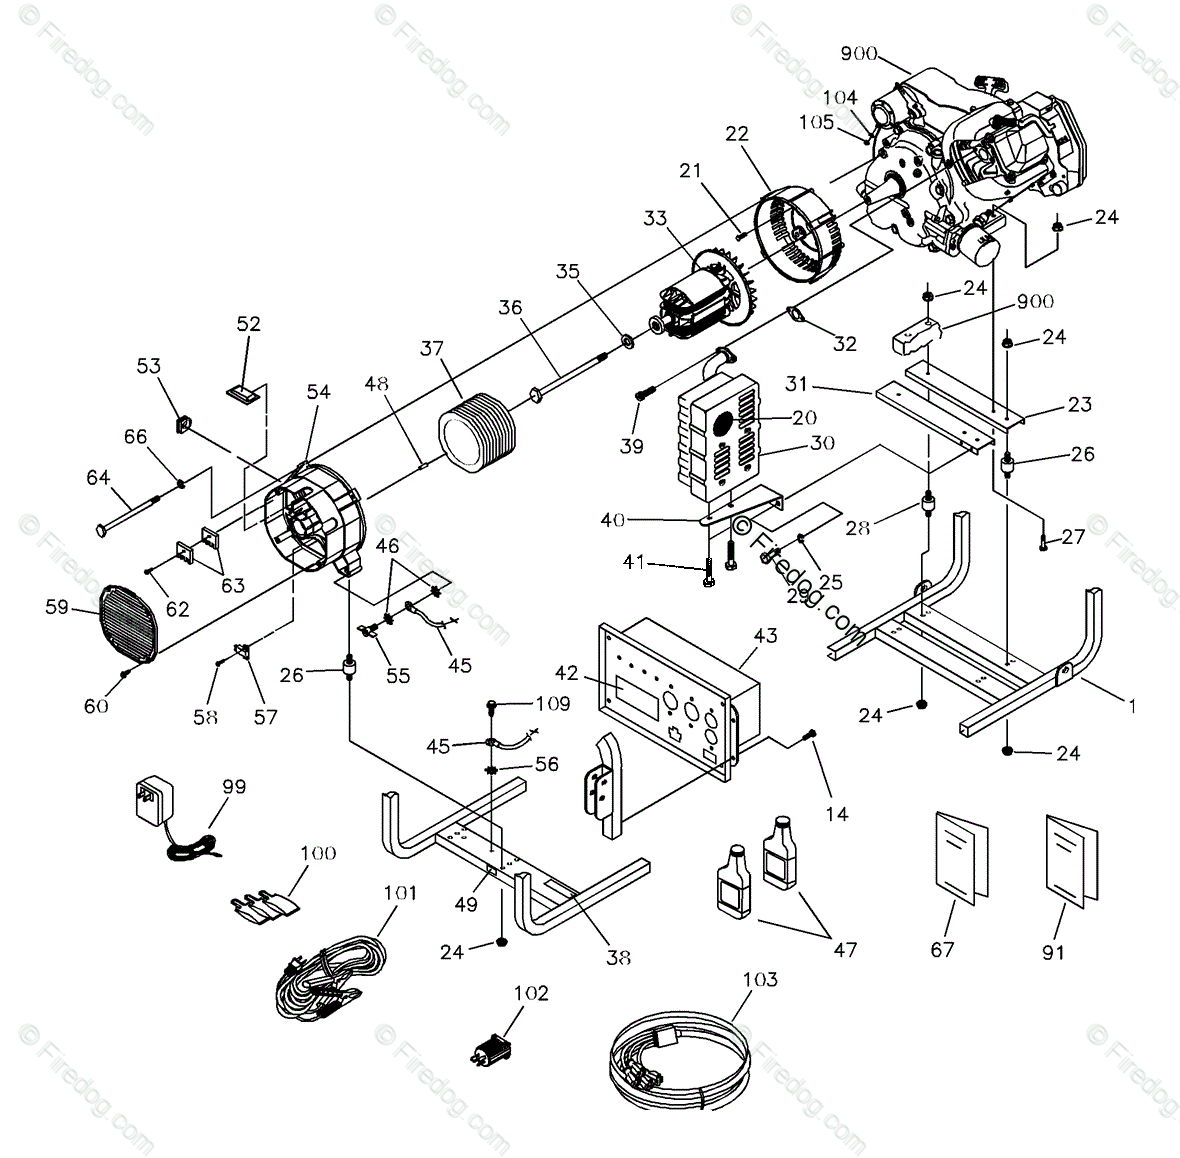 Briggs & Stratton Power Products United States Portable Generators OEM  Parts Diagram for Alternator - Firedog.com